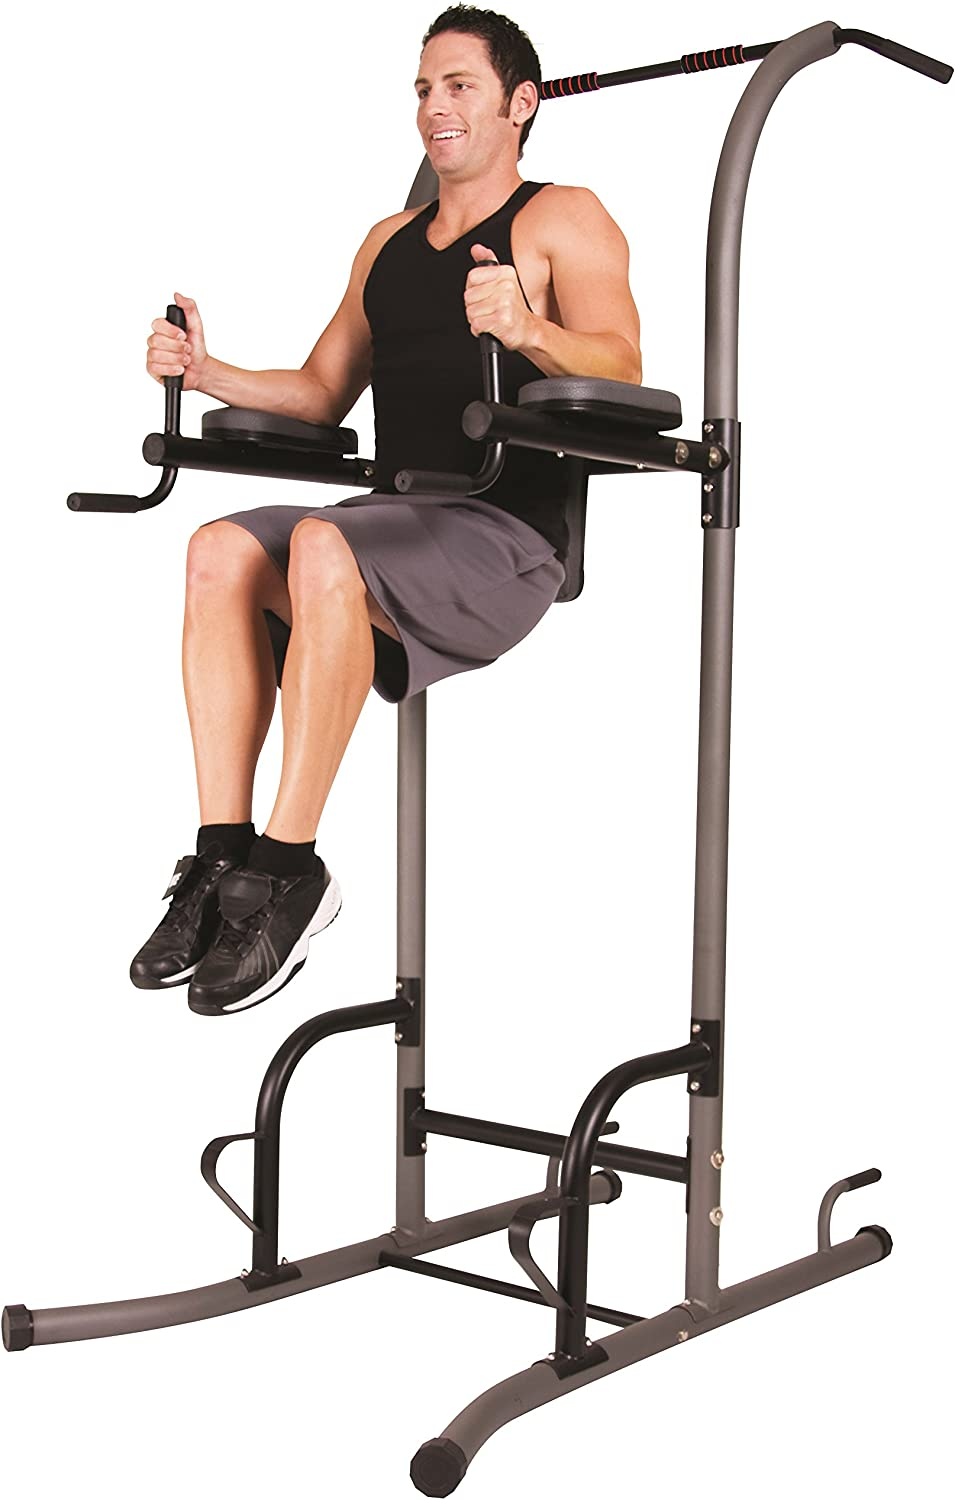 2. Body Champ VKR1010 Power Tower